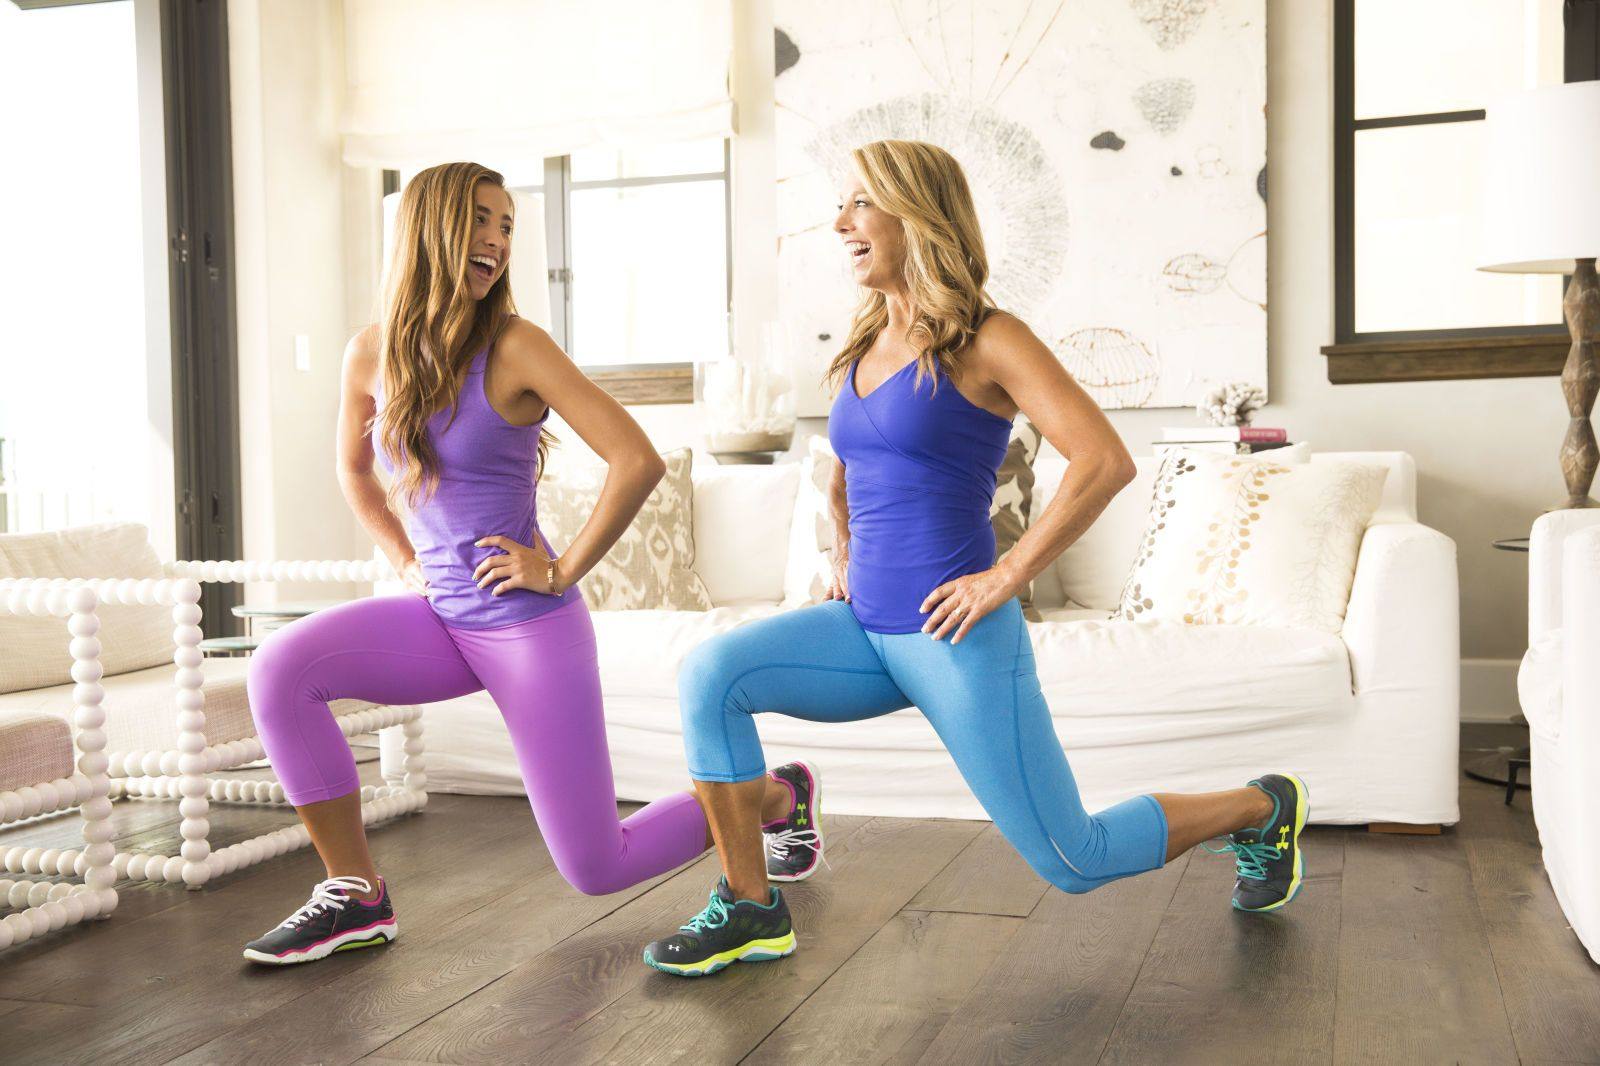 The Best Workout Mothers And Daughters Can Do Together